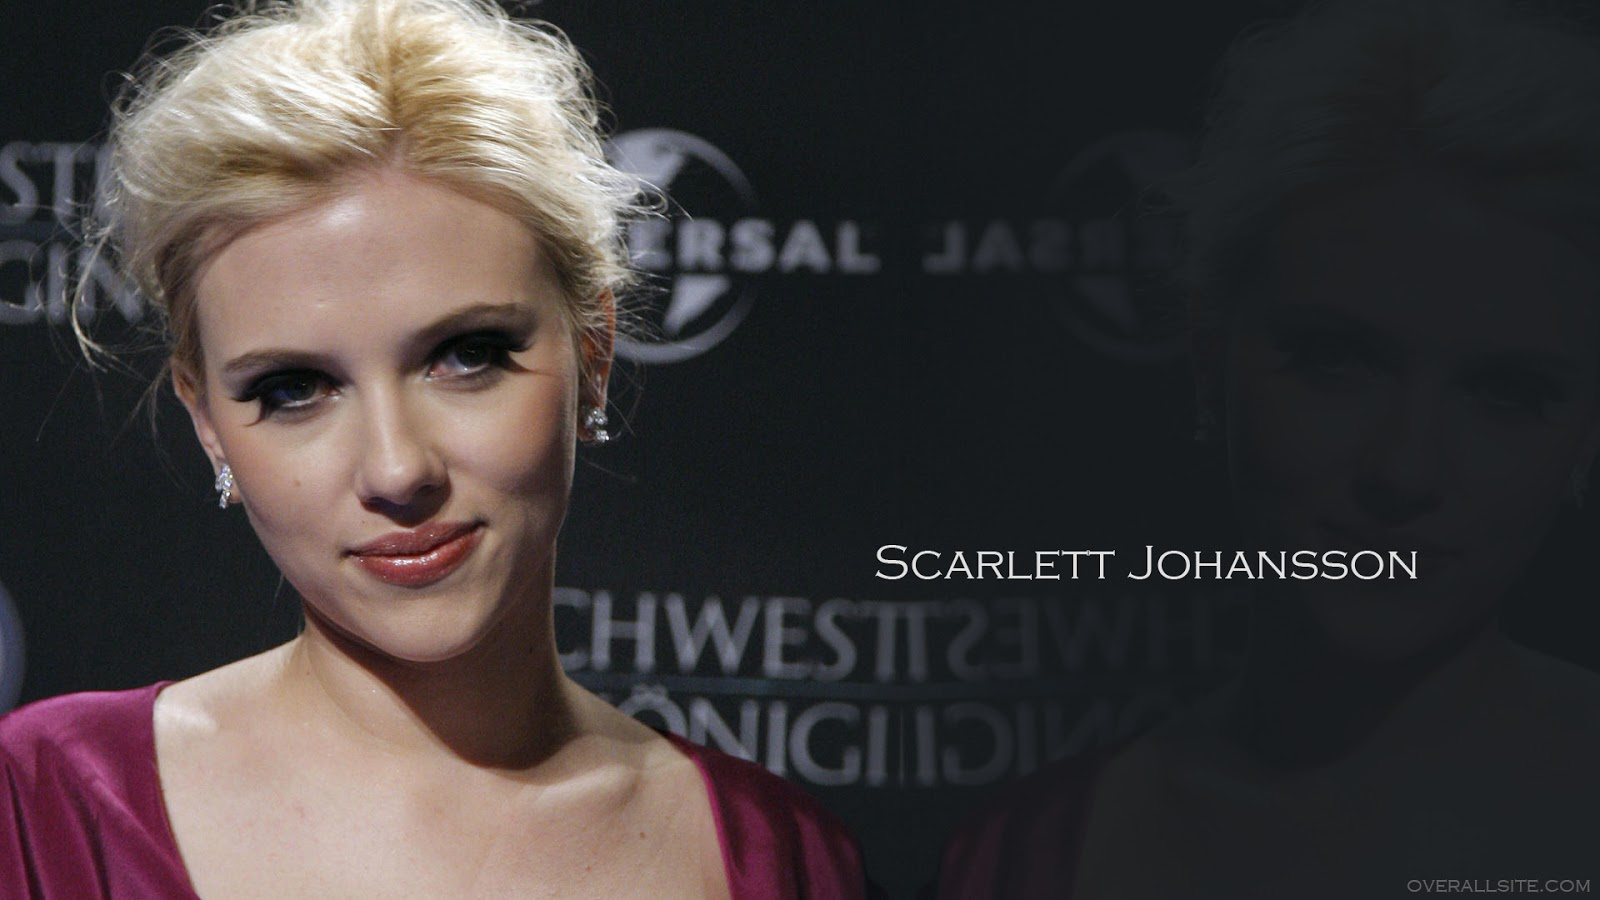 Scarlett Johansson Wallpaper: ALL ABOUT HOLLYWOOD STARS: Scarlett Johansson New HD